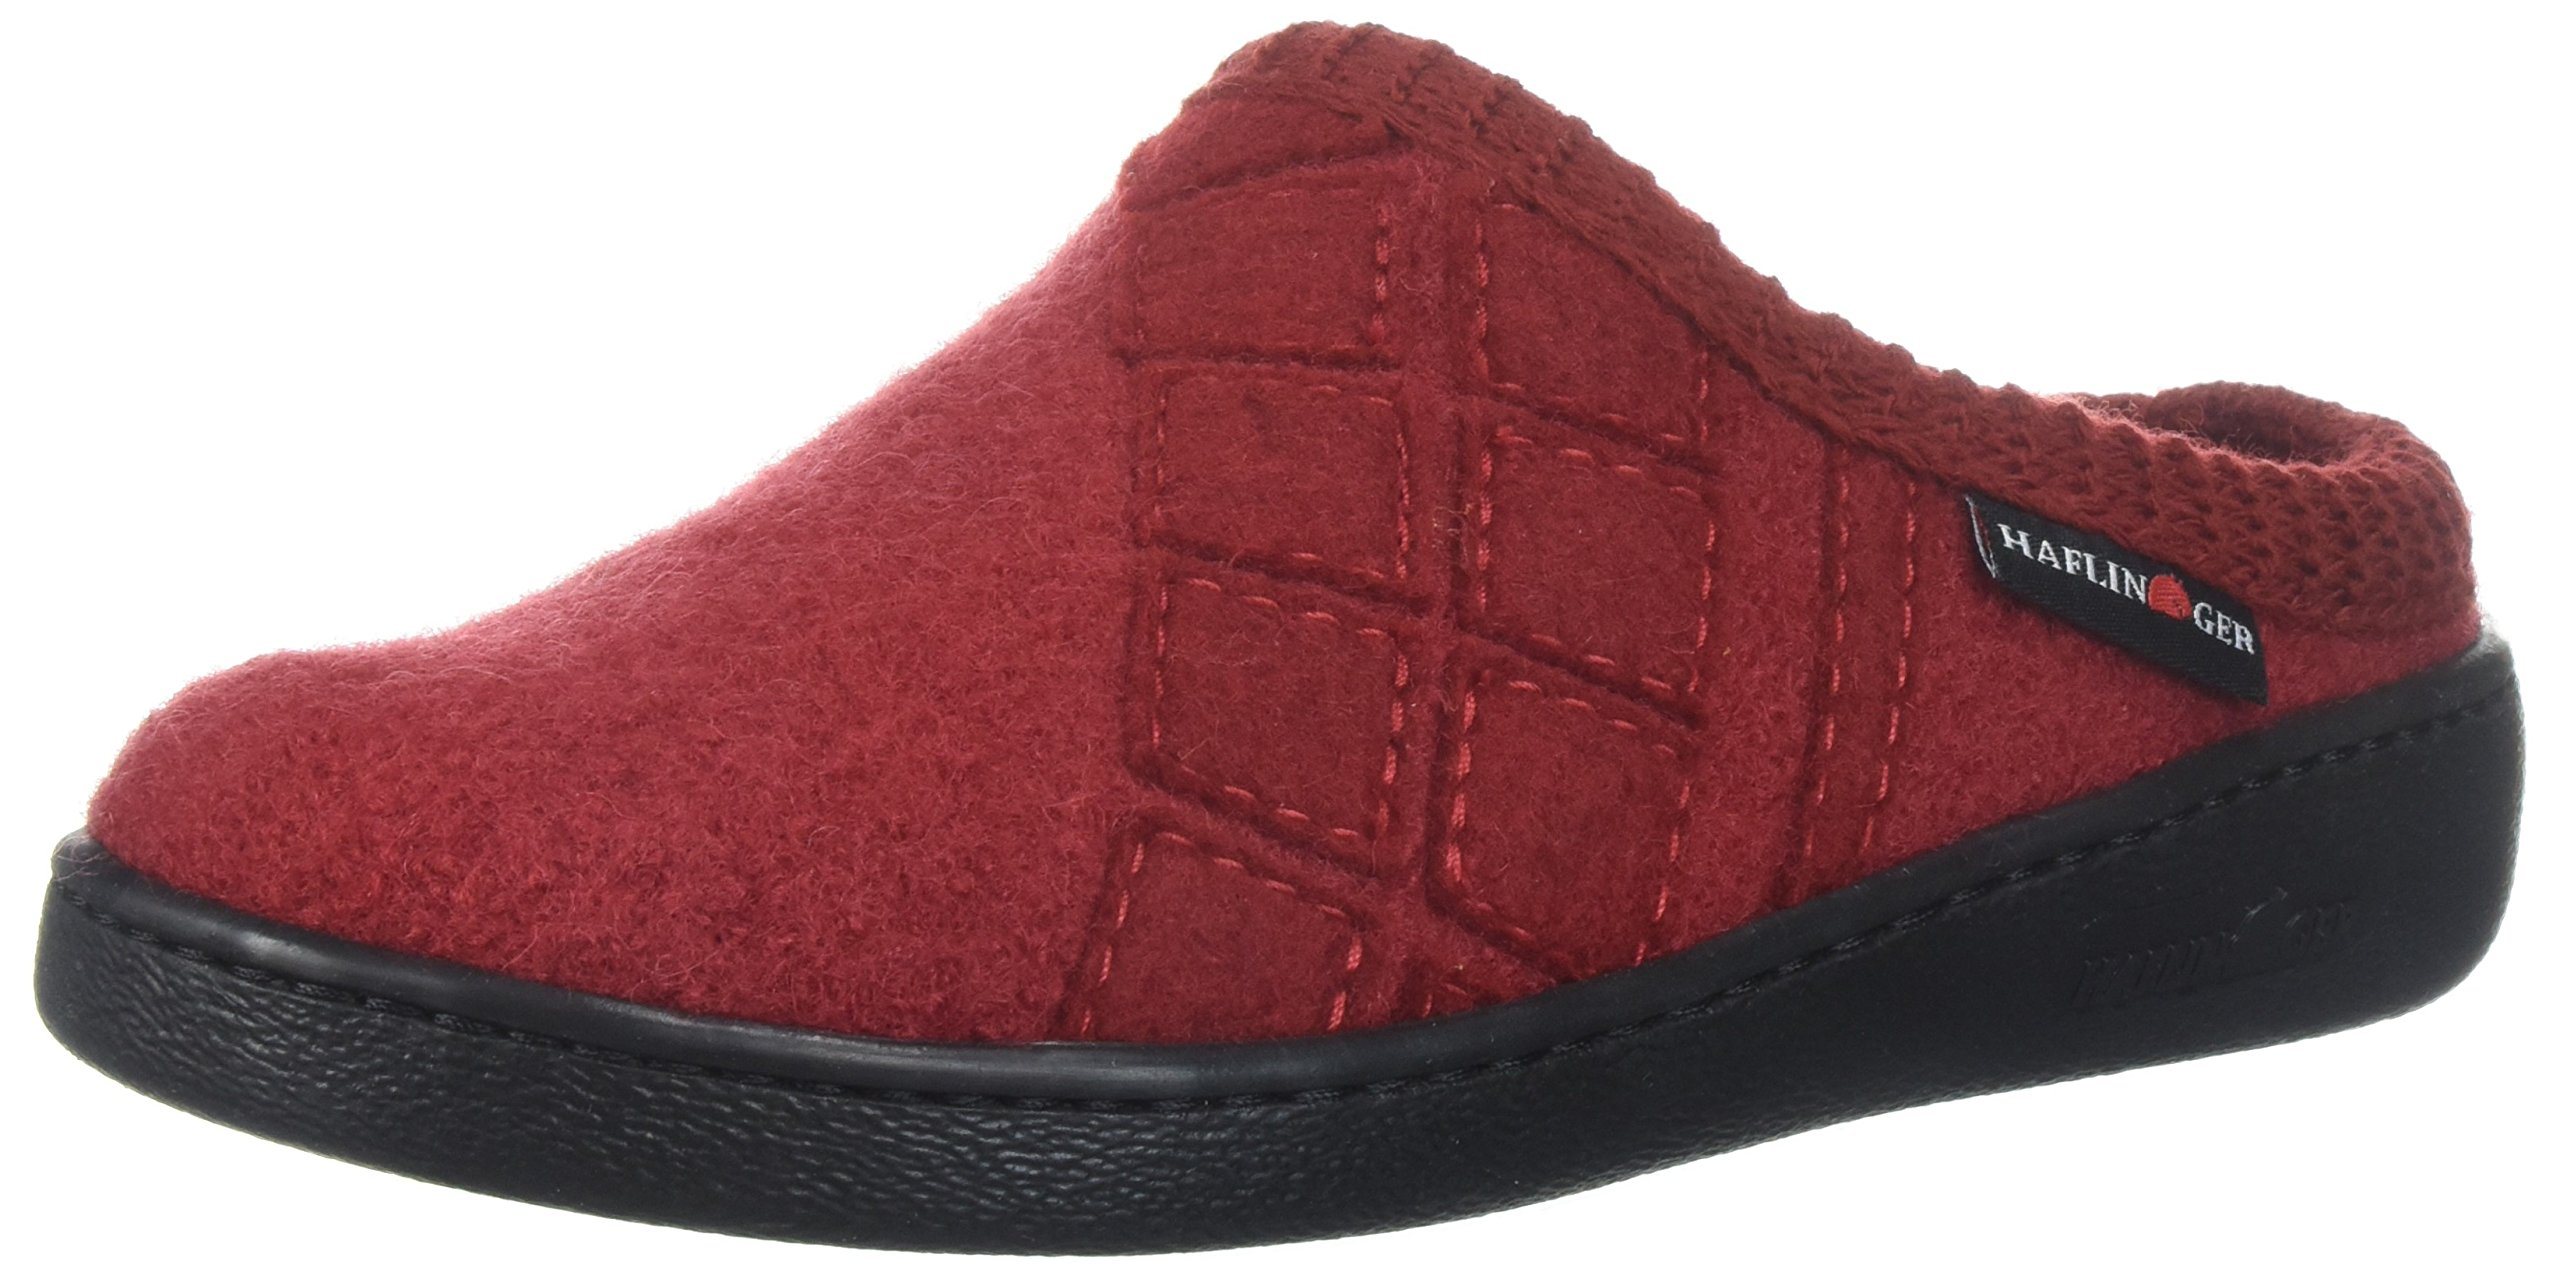 Haflinger Women's AT Tahoe Slip On Slipper, Paprika, 42 EU/11 M US